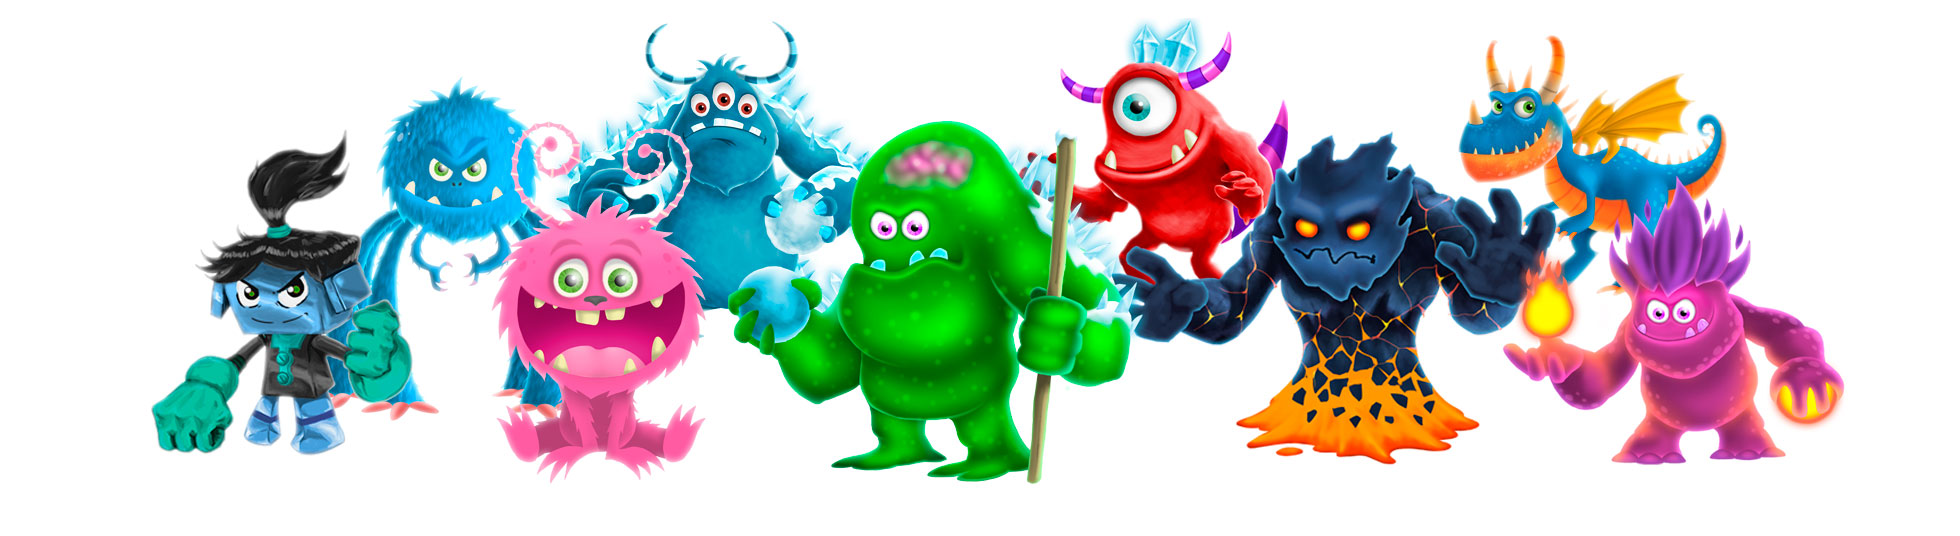 SMART_Monsters_group